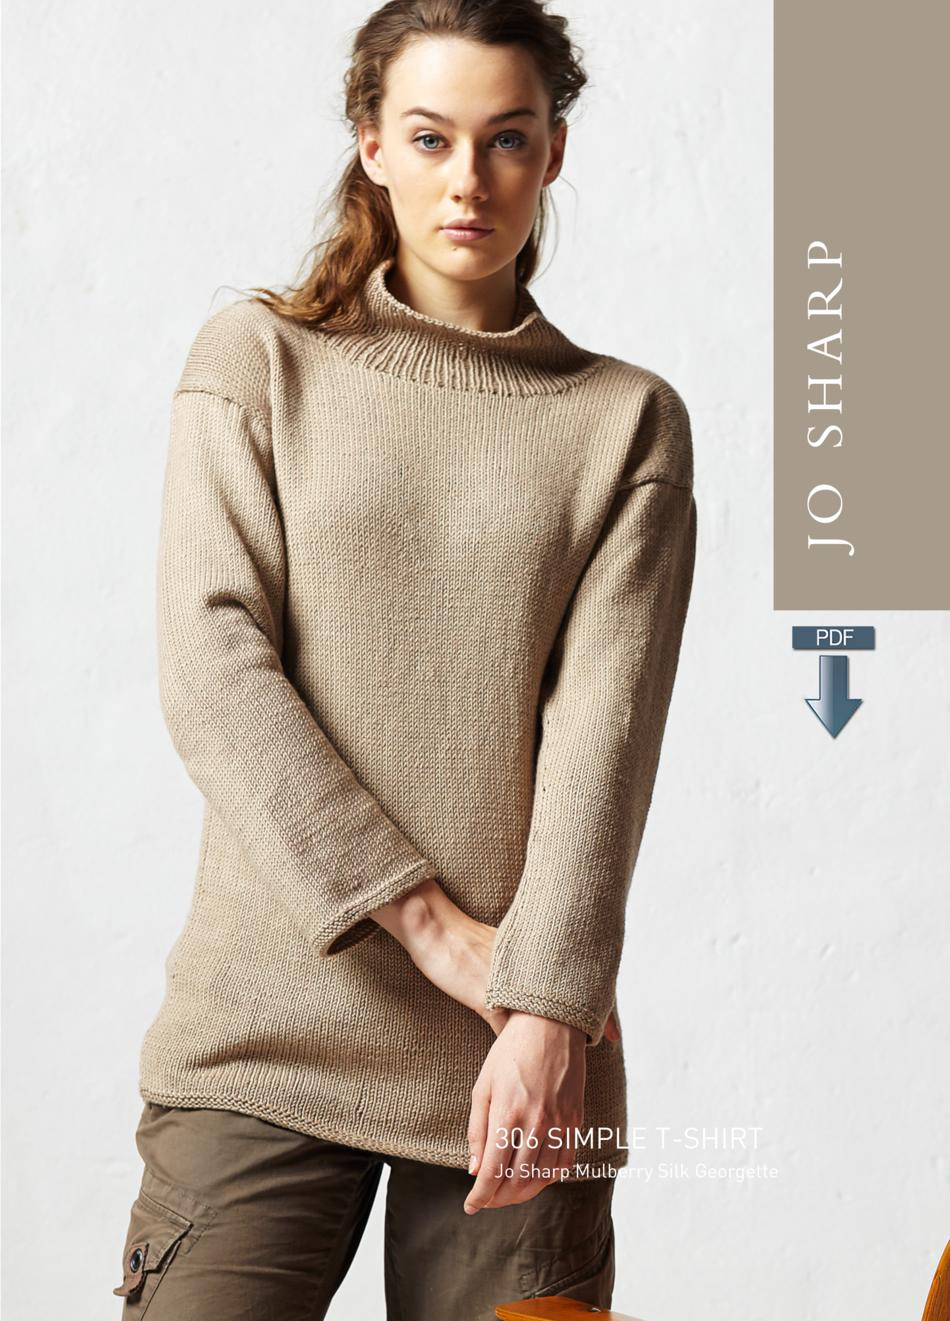 Knitted Shirt Pattern : Jo Sharp Simple T-Shirt Pattern - Pattern Download, Knitting Pattern - Halcyo...